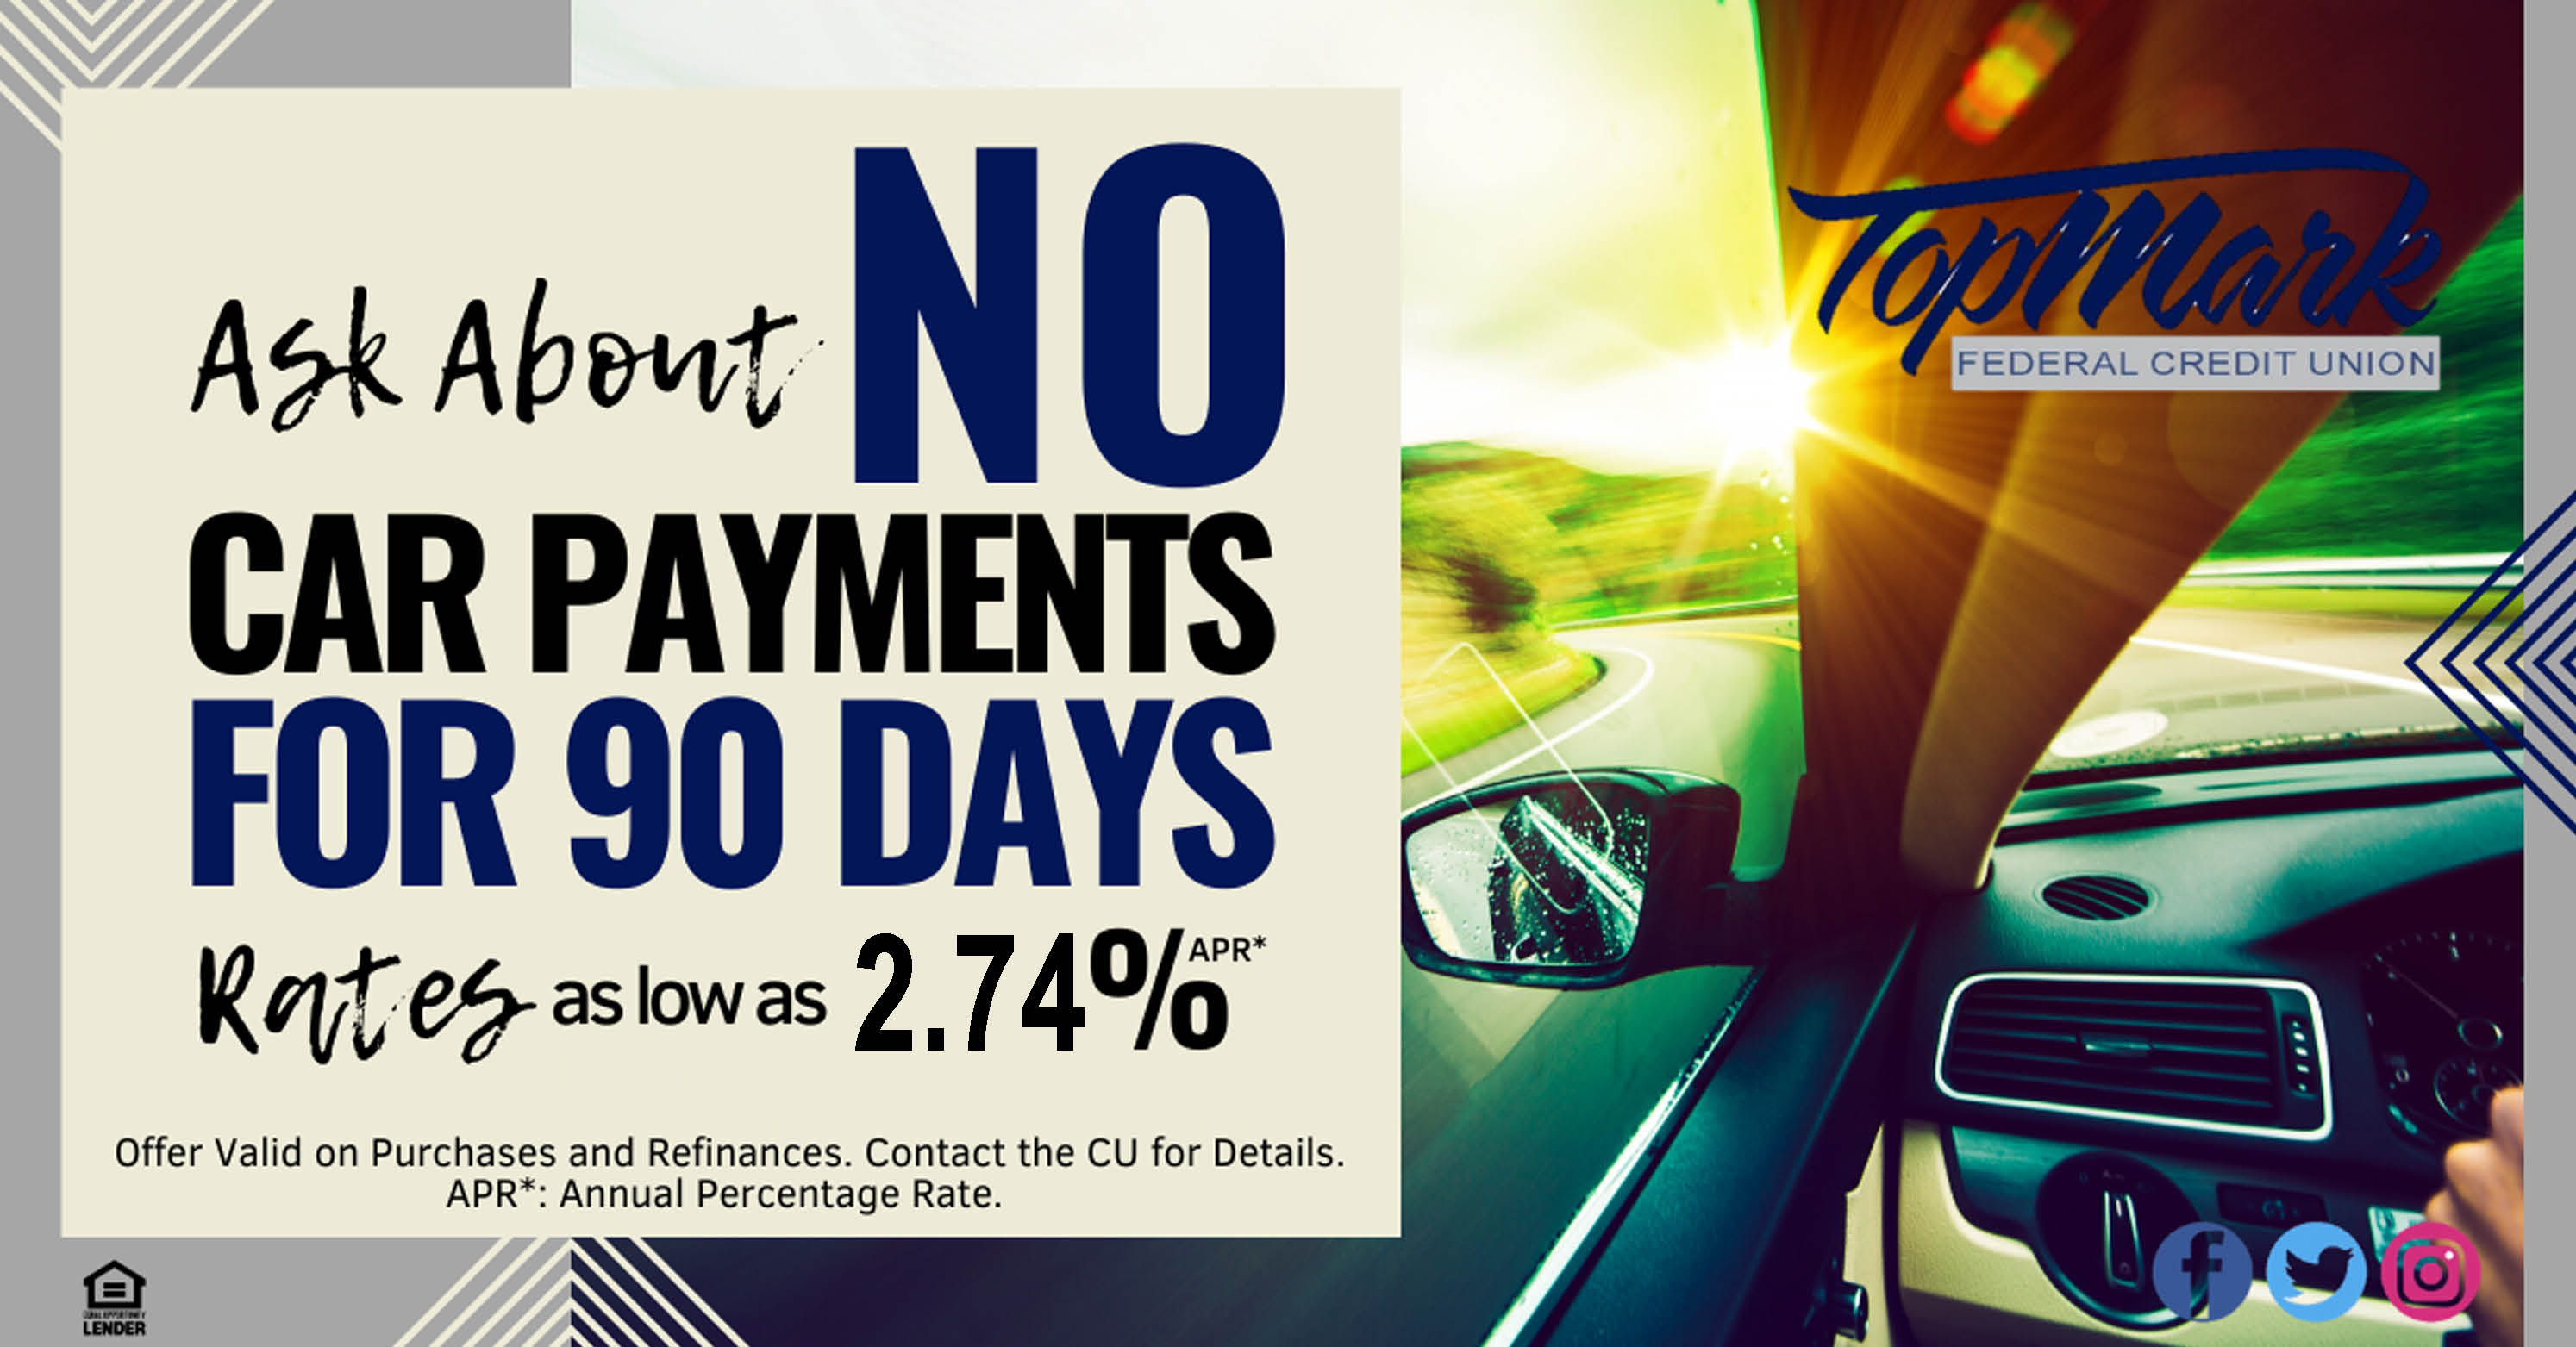 No Payment for 90-Days 2.74%